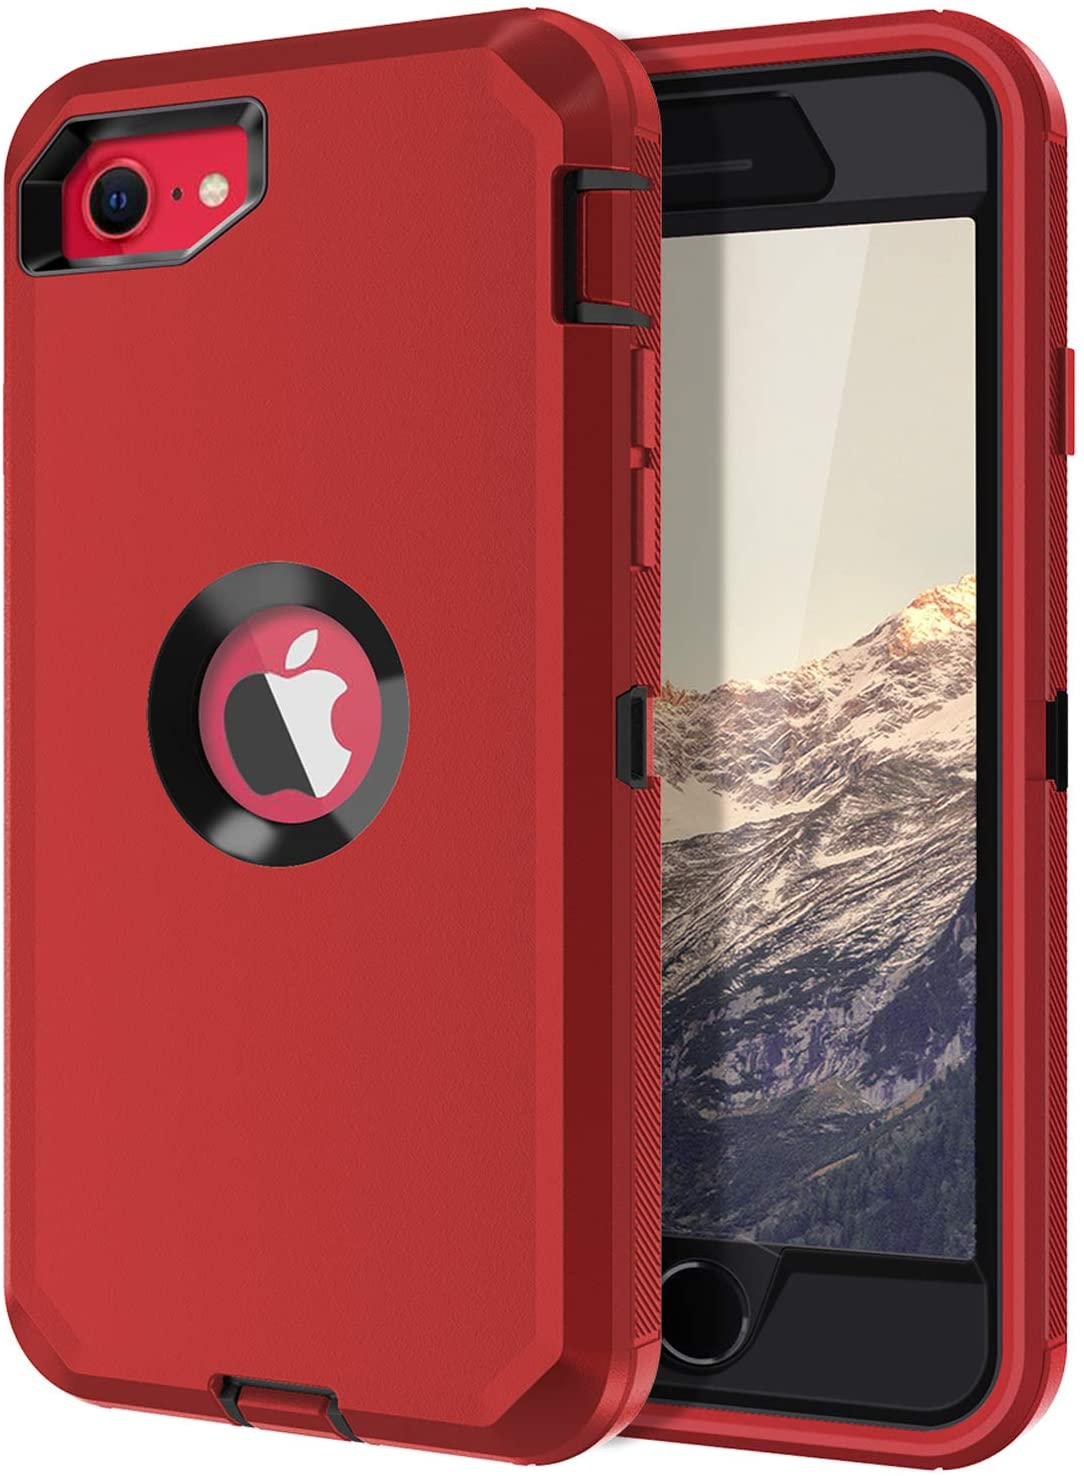 I-HONVA for iPhone SE 2020 Case Built-in Screen Protector Shockproof Dust/Drop Proof 3-Layer Full Body Protection Rugged Heavy Duty Durable Cover Case for Apple iPhone SE (2nd Gen) 4.7-inch, Red/Black